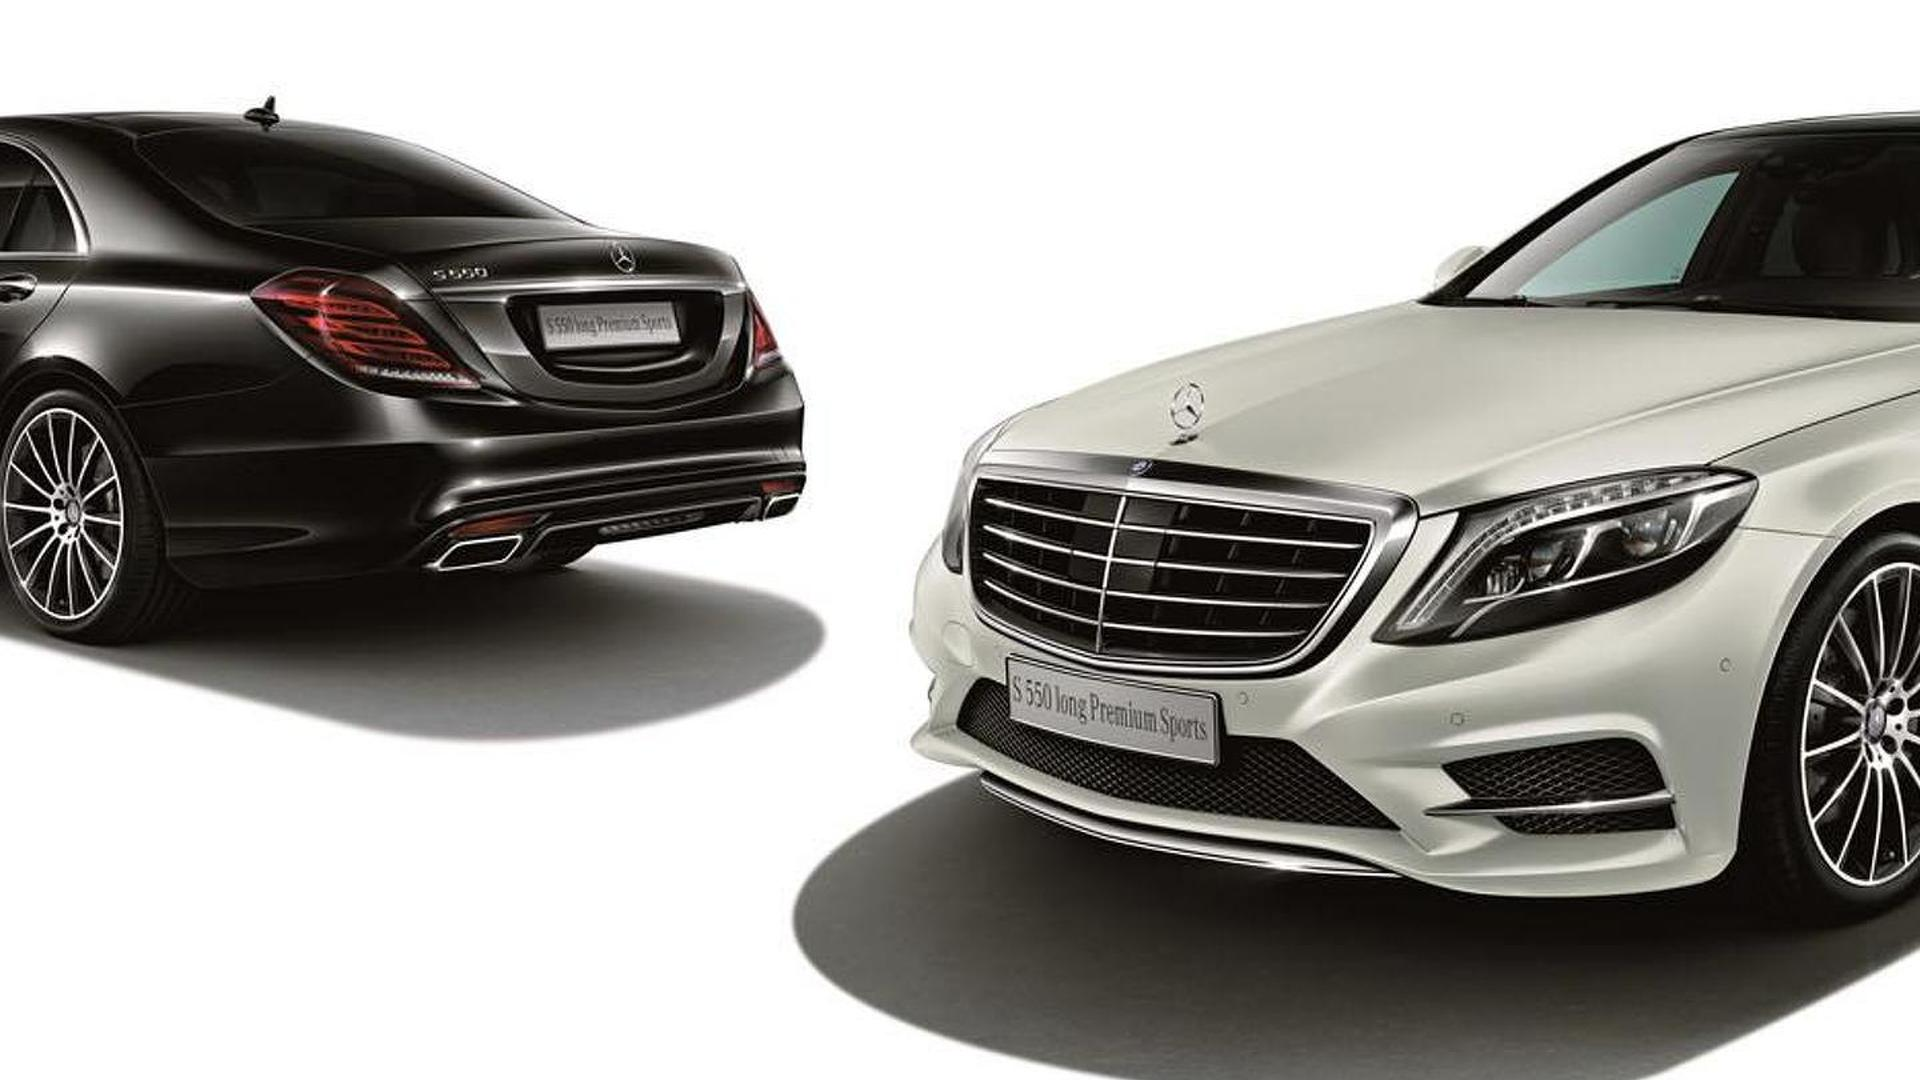 Mercedes S550 Premium Sports edition unveiled in Japan